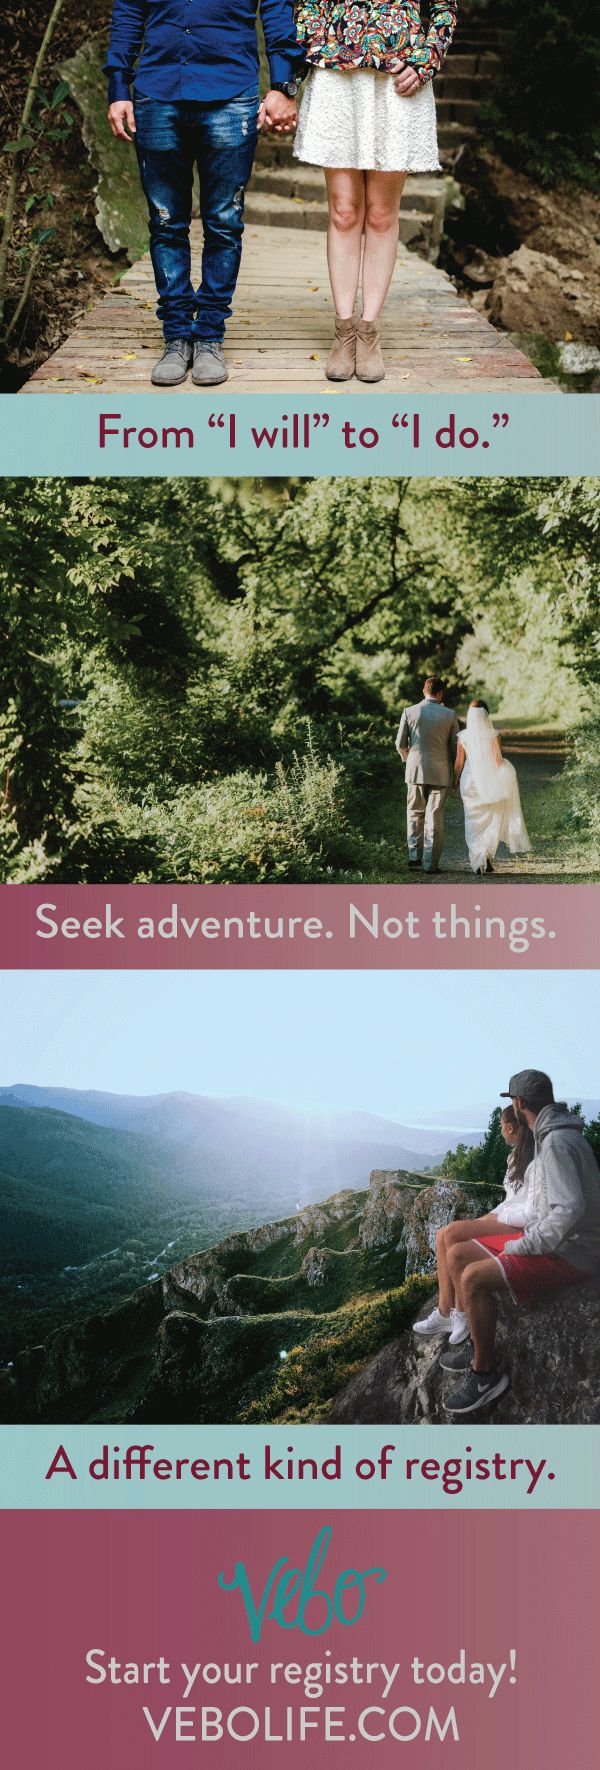 VEBO is a wedding registry for adventurous couples. Sign up for free to start adding experiences to your registry, like horseback riding, skydiving, backpacking trips, whitewater rafting, wine tasting, brewery tours and more! Add experiences to your registry, then share with friends and family so they can chip in to purchase your next adventure. And 5% of all sales go to a charity YOU select! Start your registry today!